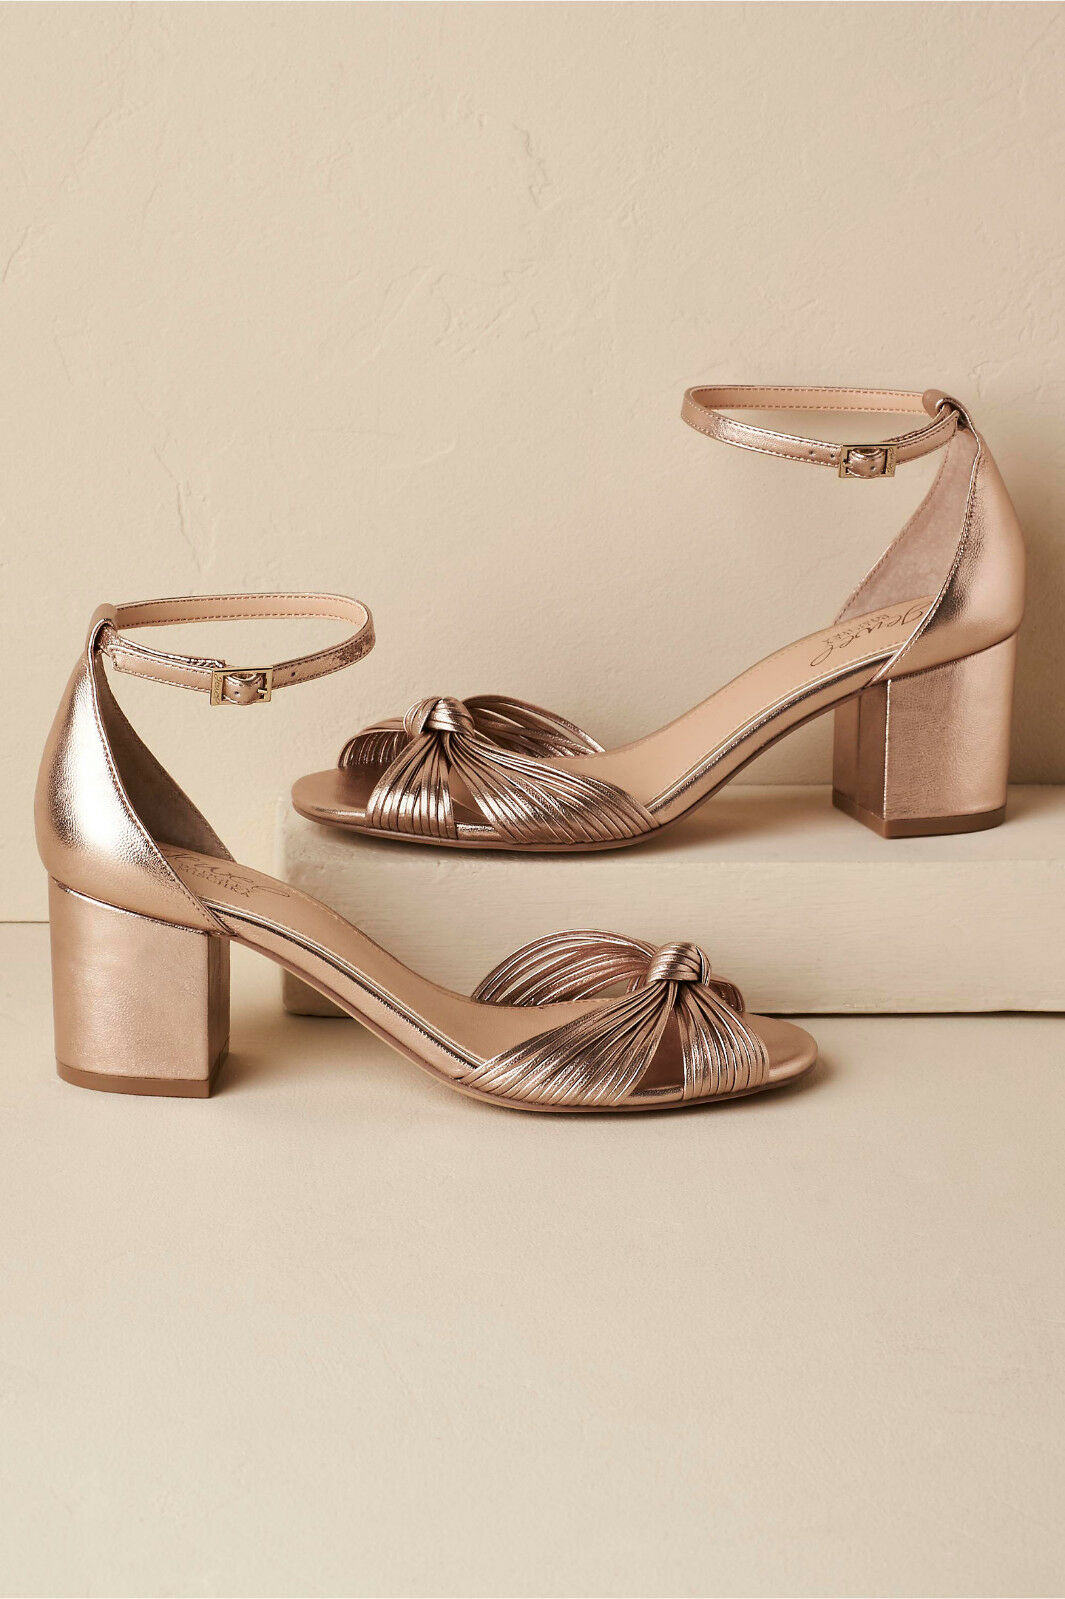 BADGLEY MISCHKA 7 pinkgold KNOTTED BLOCK HEEL ANKLE STRAP BHLDN SOLD OUT 109